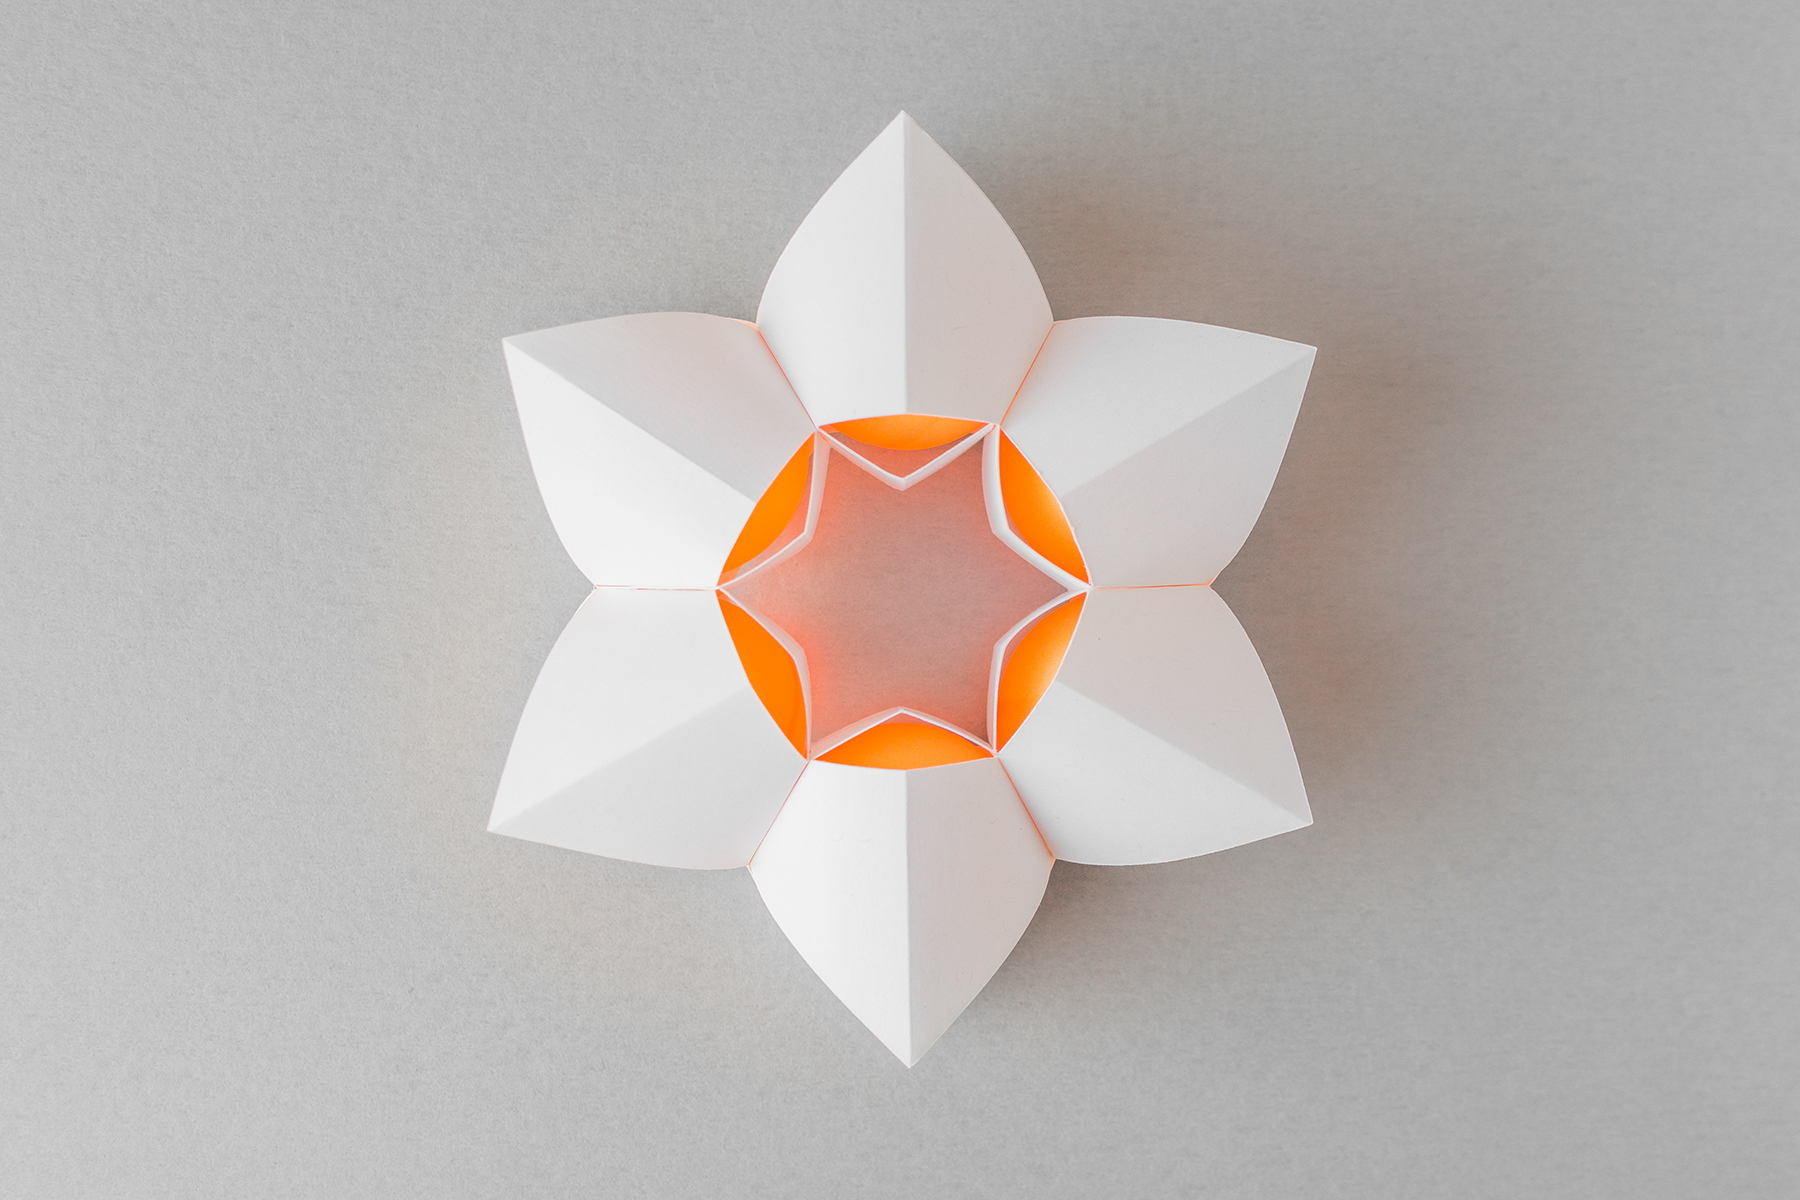 Ping Pong Ball Packaging - This is packaging for six ping pong balls using one piece of white card stock. It was hand-cut, folded, and adhered with super glue. The form was inspired by a lotus, and the six balls securely nest in each individual section of the structure.